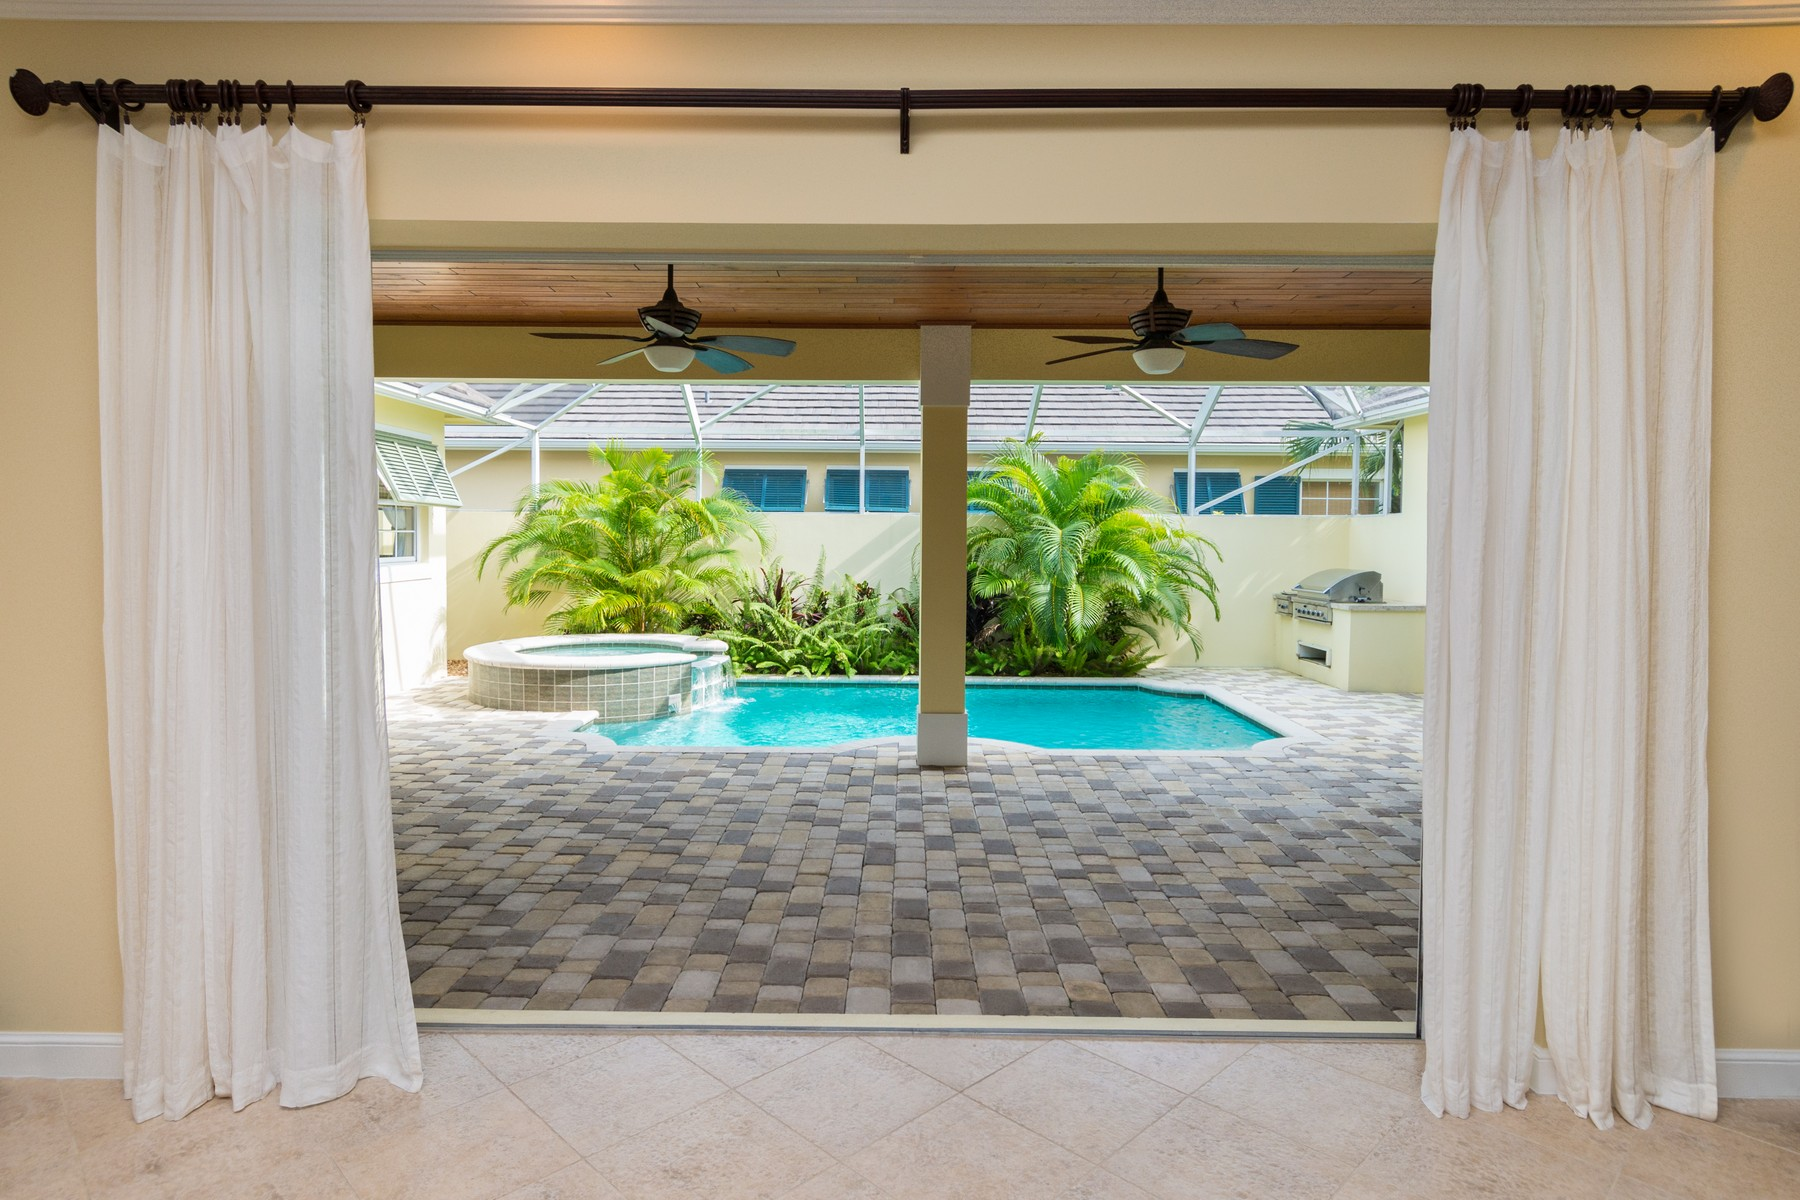 Additional photo for property listing at Seasons Courtyard Pool Home 2050 Autumn Lane Vero Beach, Florida 32963 United States